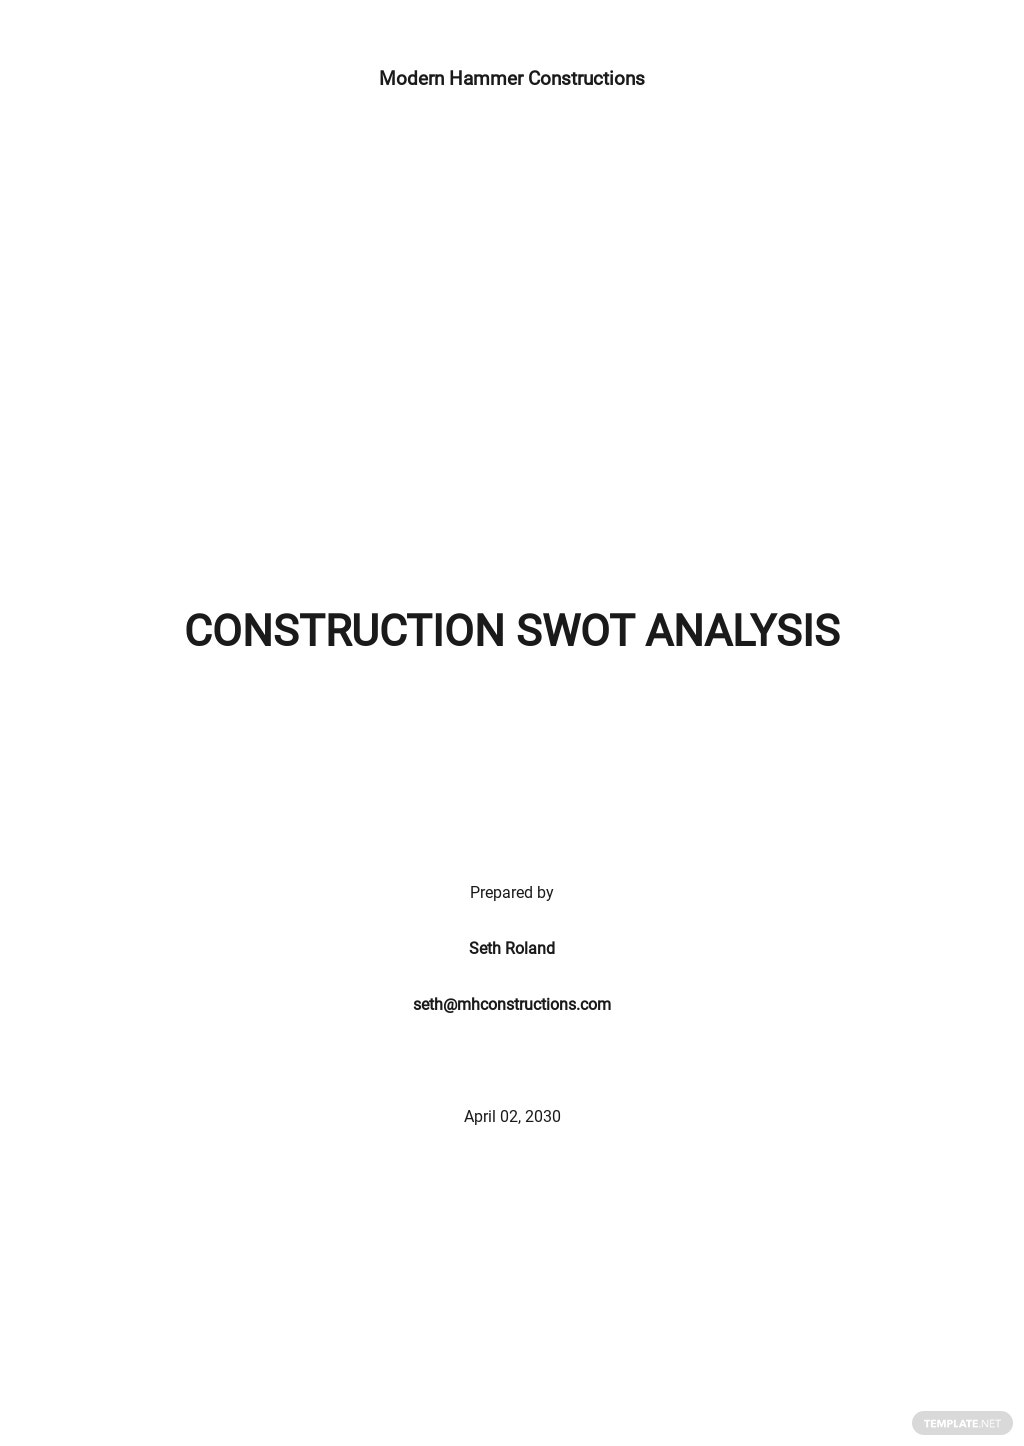 Simple Construction Swot Analysis Template